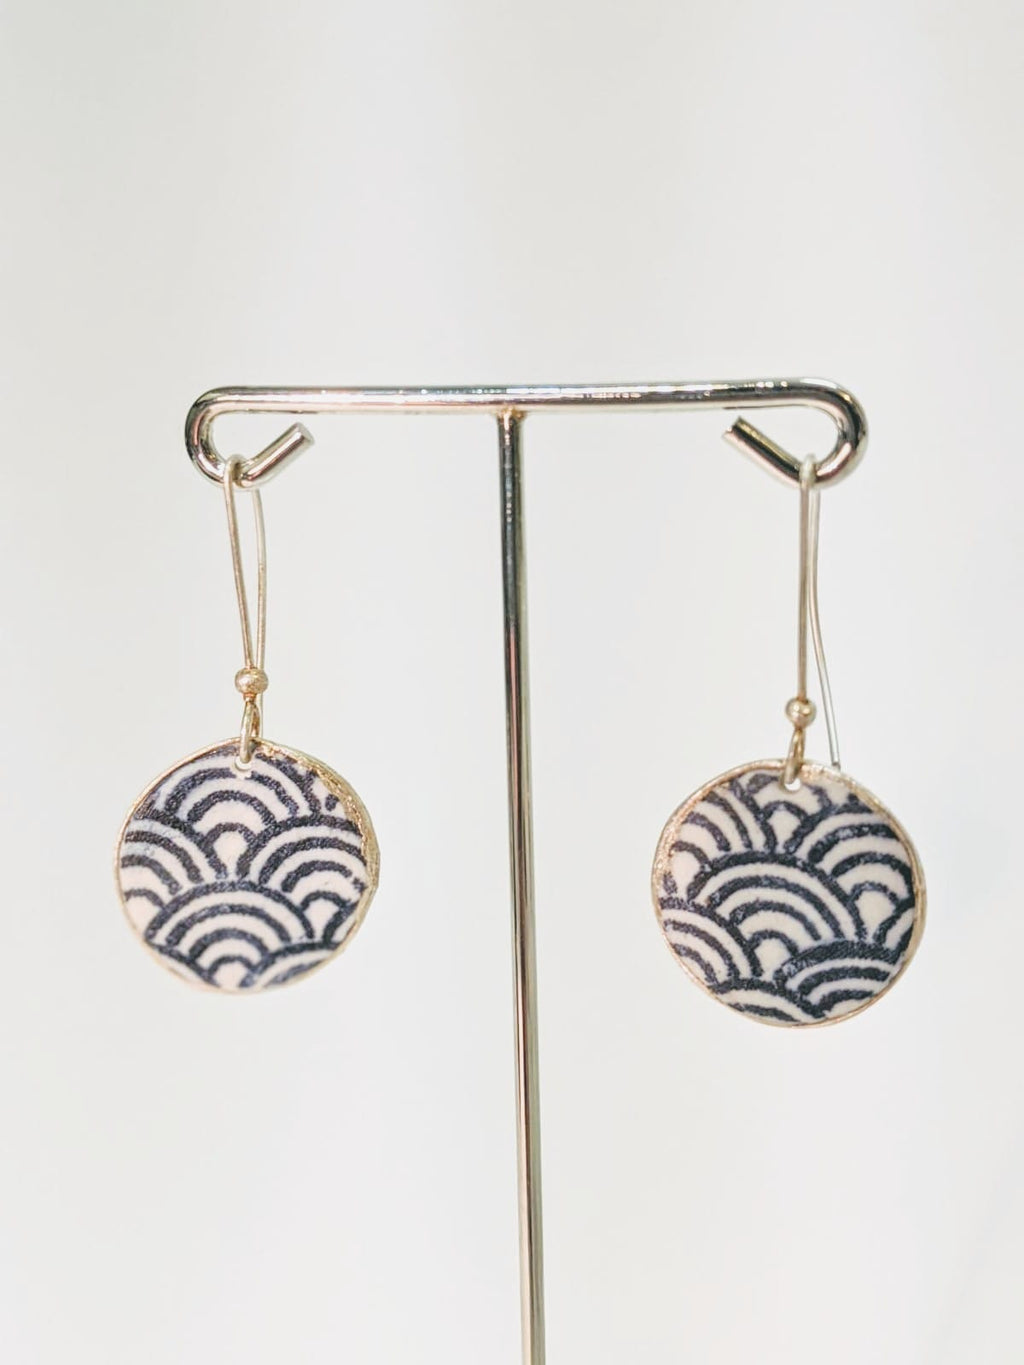 Madmoiselle Butterfly Earrings